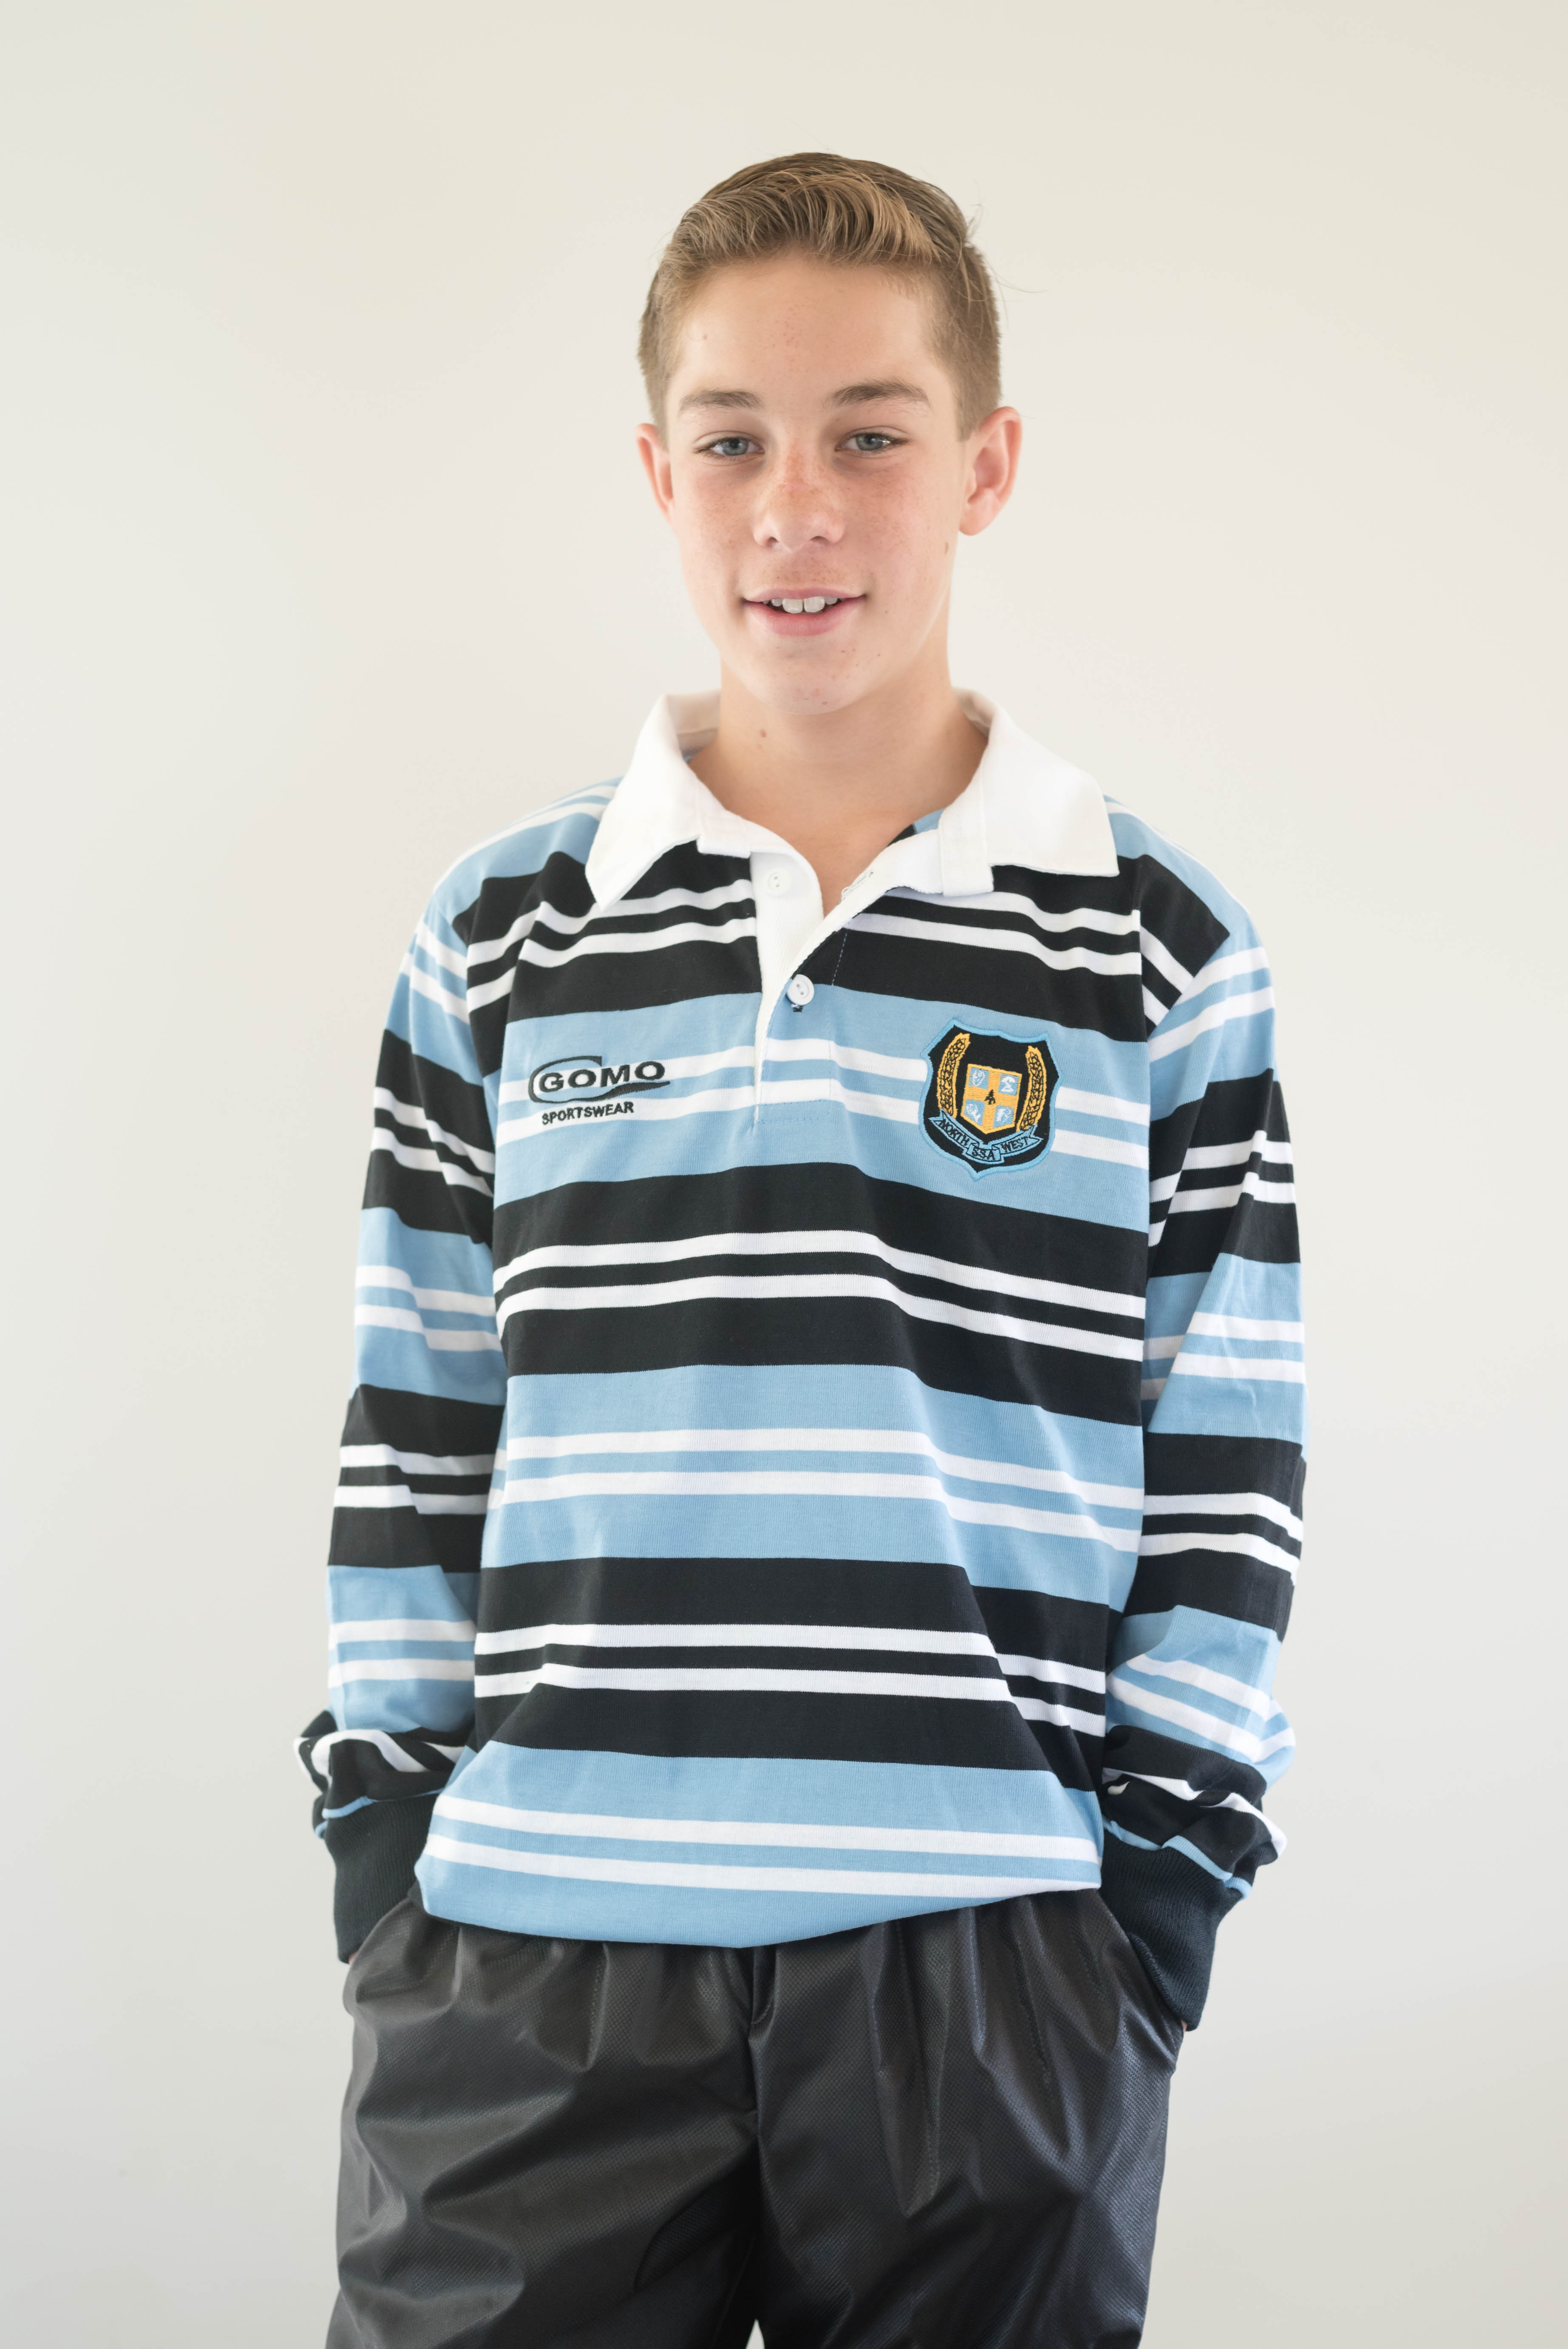 NW rugby top